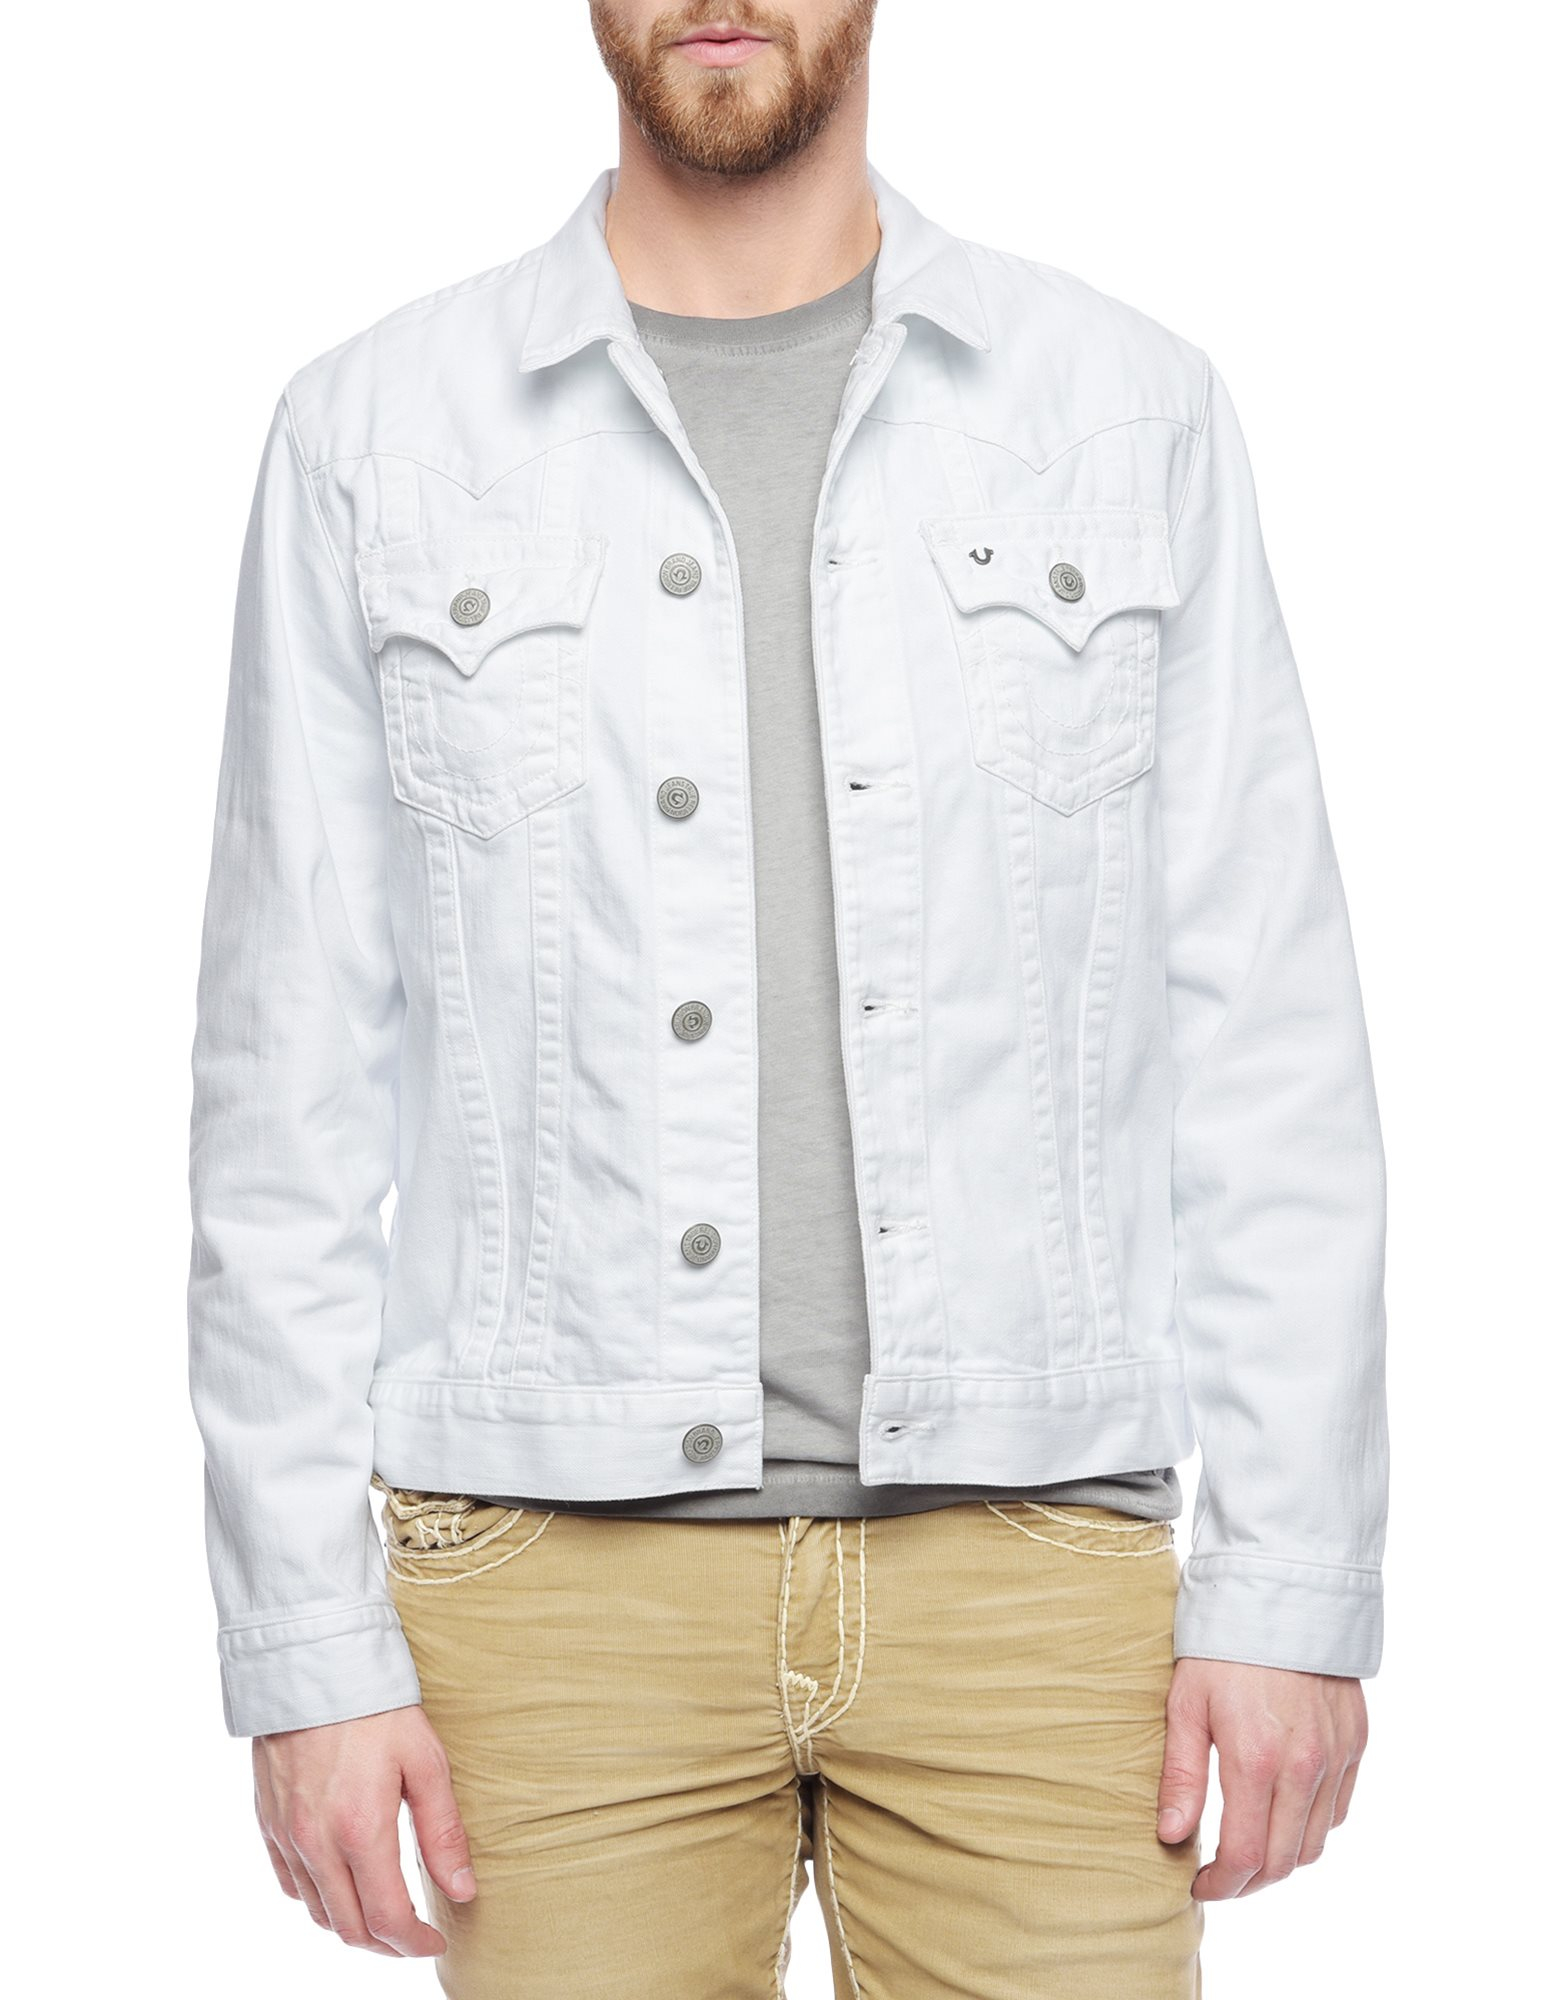 Free shipping BOTH ways on white levis sleeveless denim jacket men, from our vast selection of styles. Fast delivery, and 24/7/ real-person service with a smile. Click or call